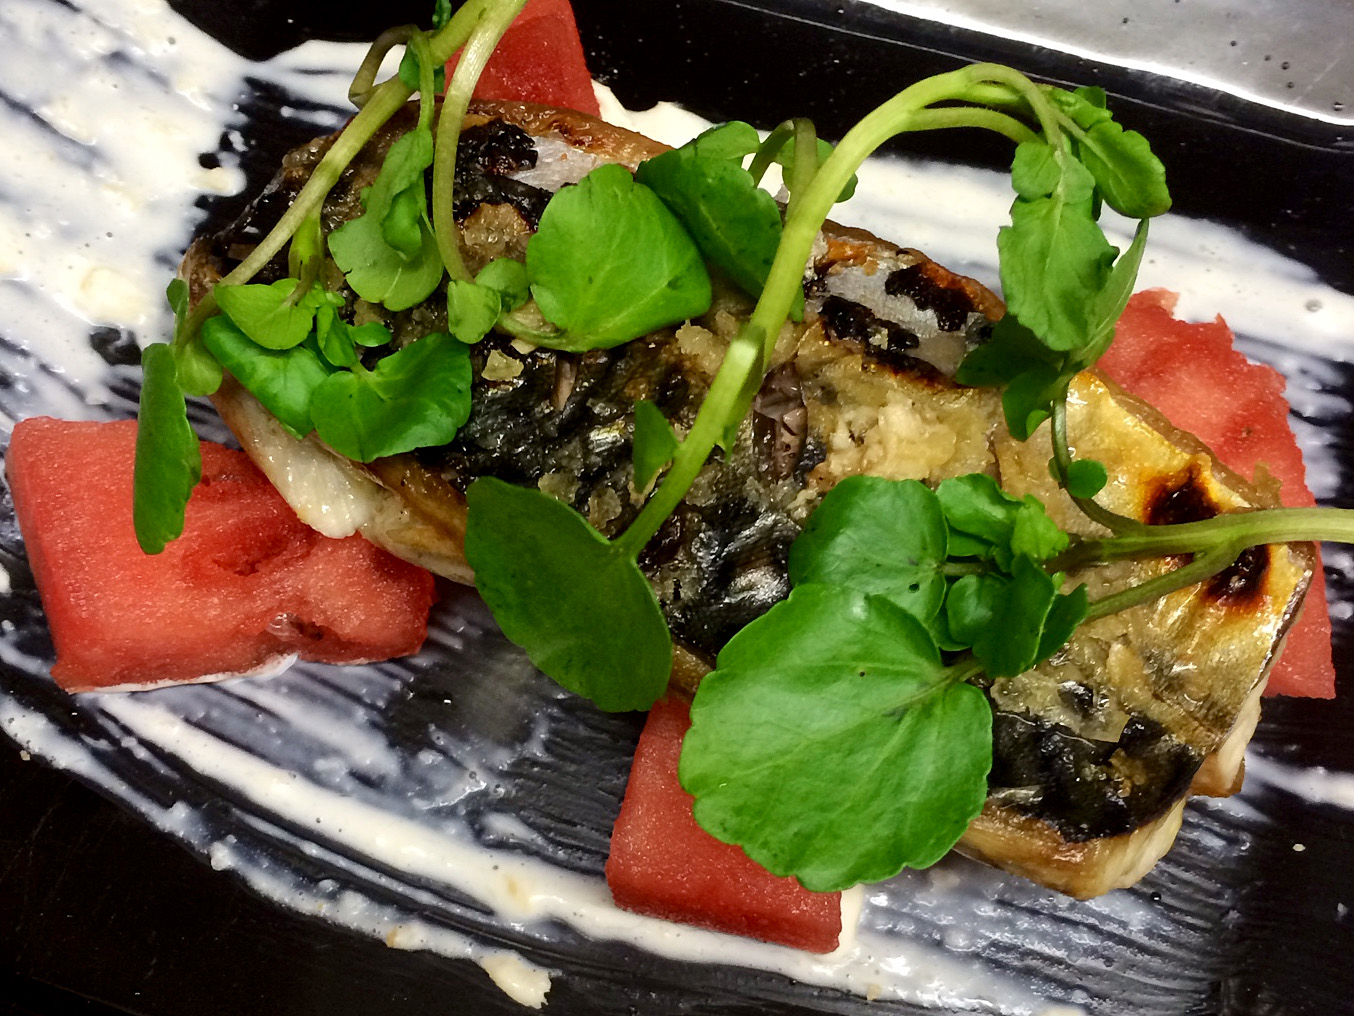 Grilled fillet of Mackerel served with watermelon, watercress & a horseradish cream copy